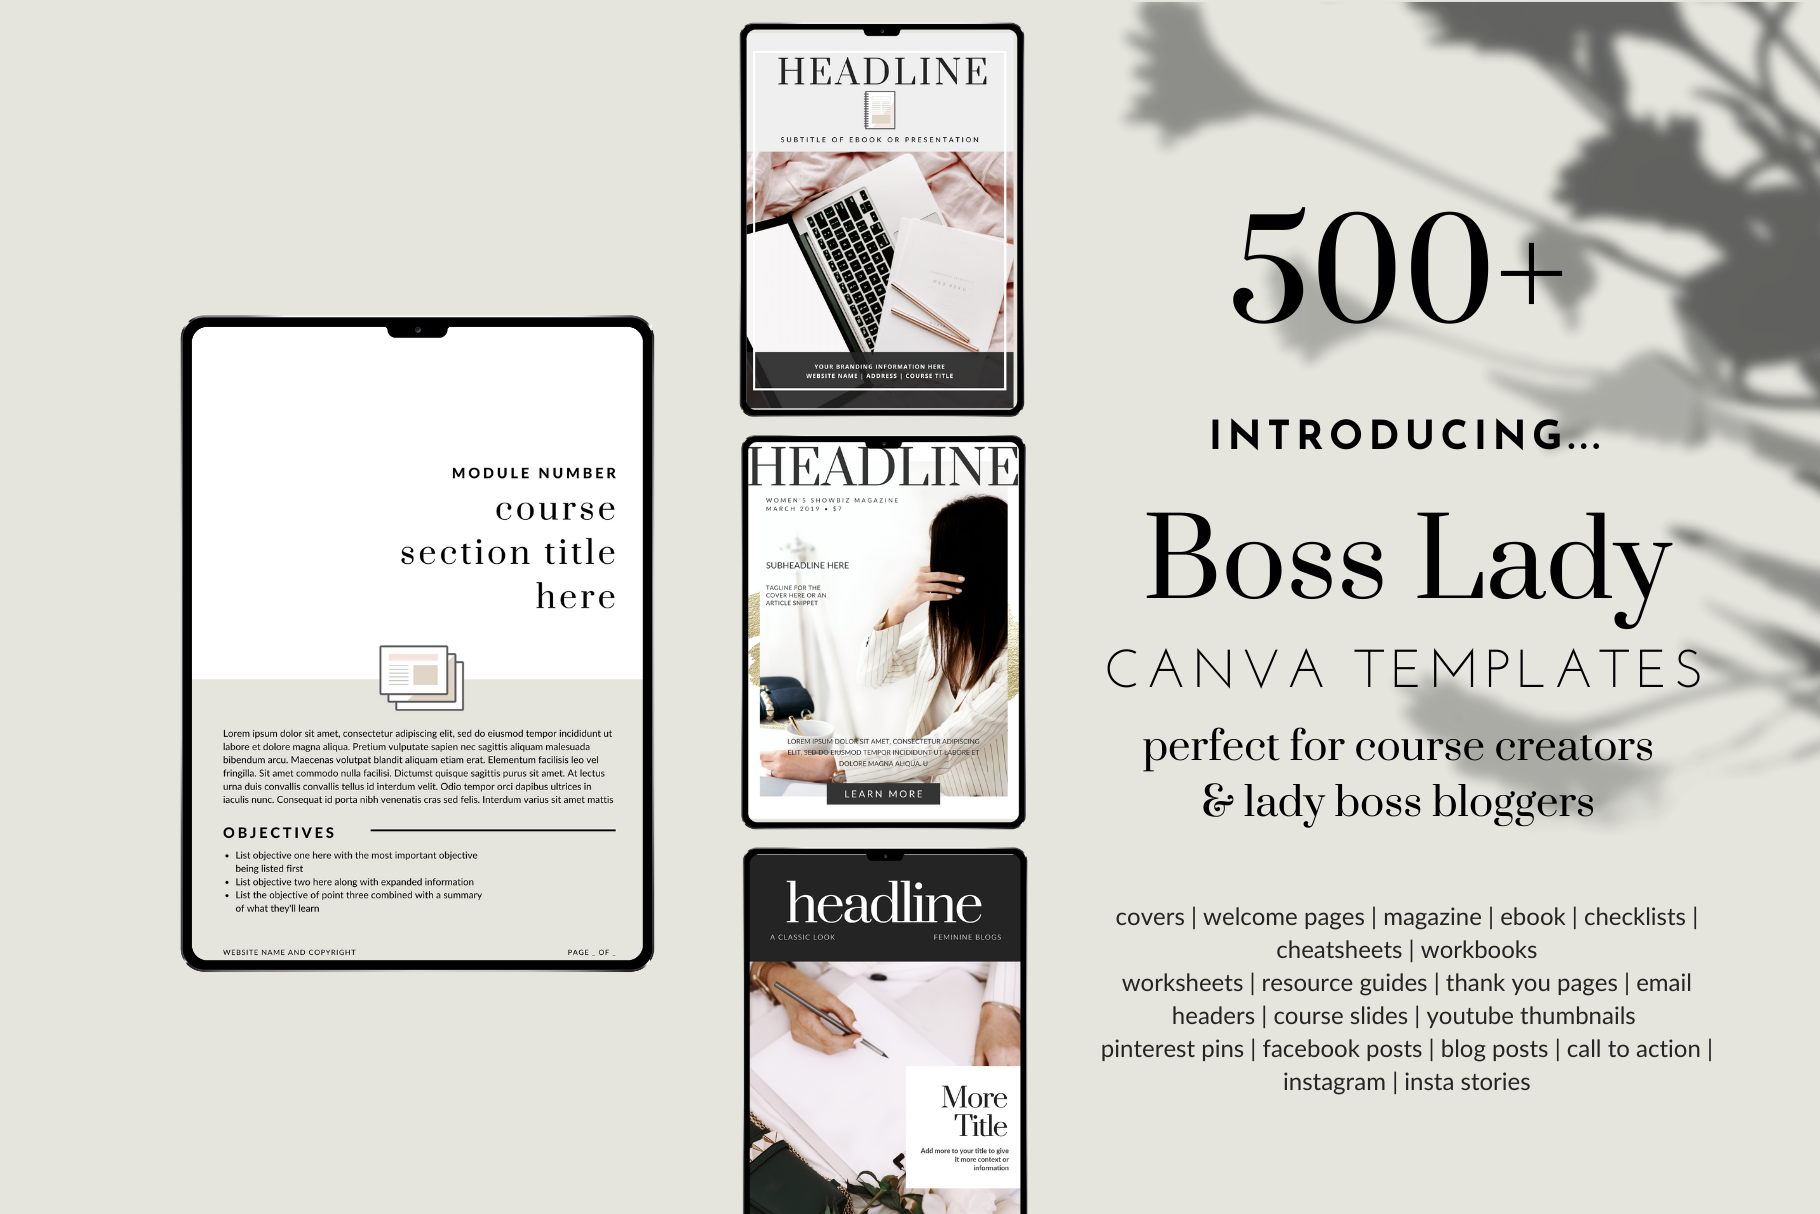 500+ Canva Templates - Lady Boss Design - for Course Creators & Lady Boss Bloggers